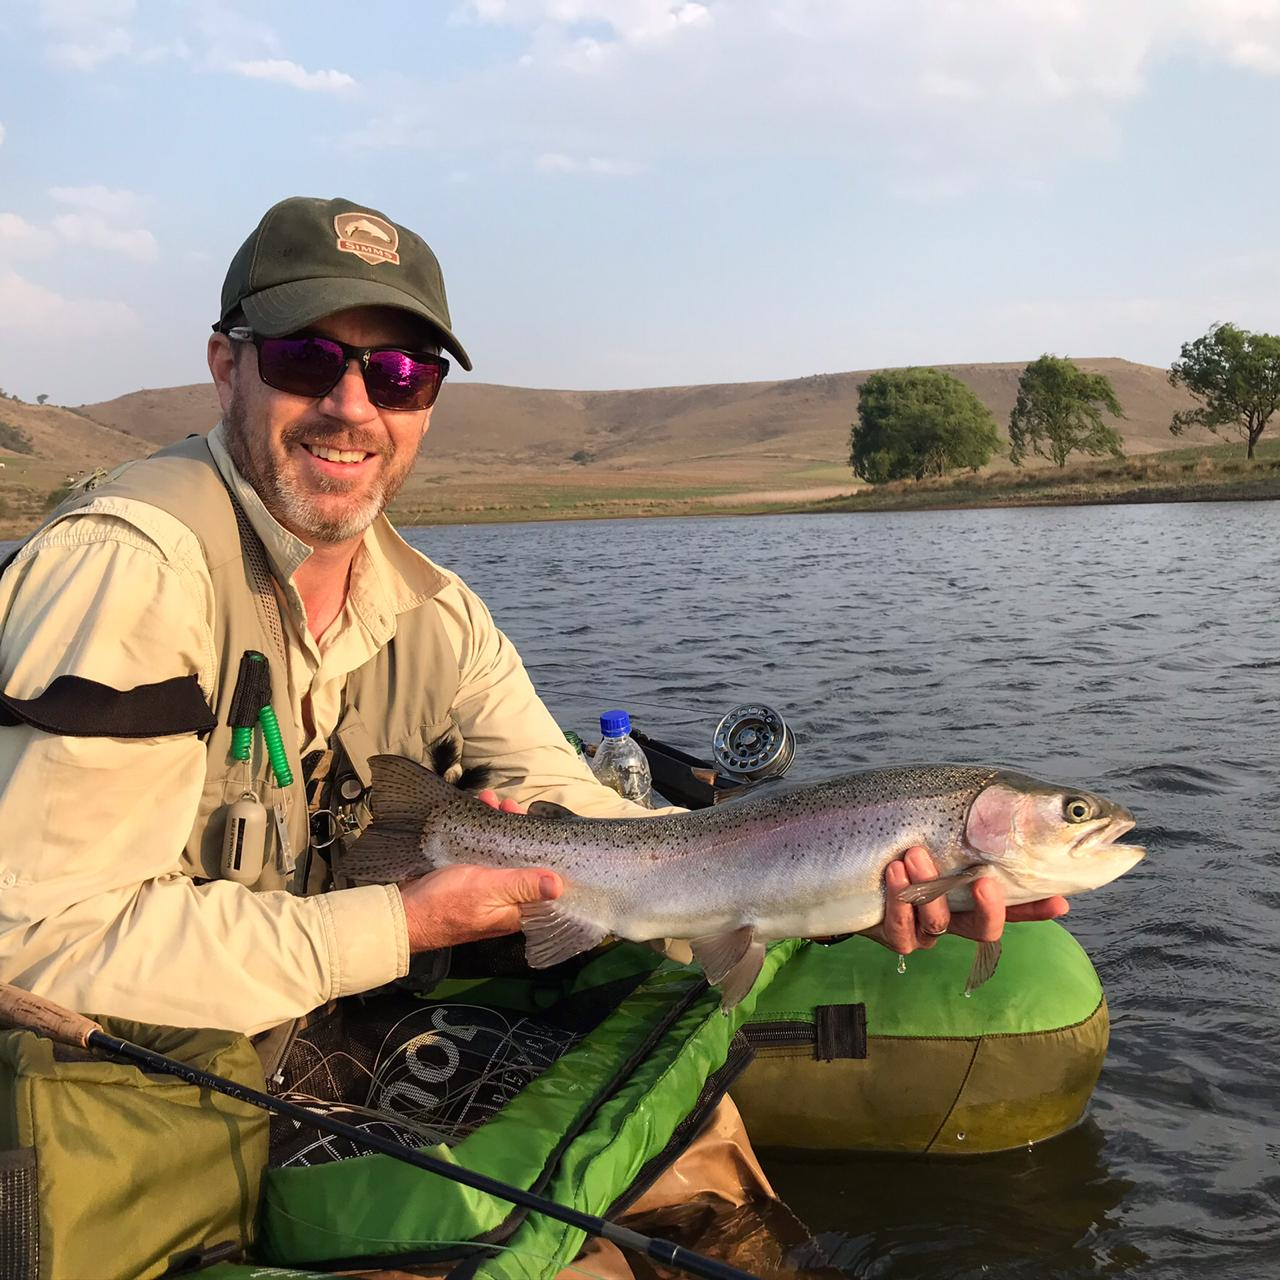 Scott MacIntyre with his beautiful Rainbow.